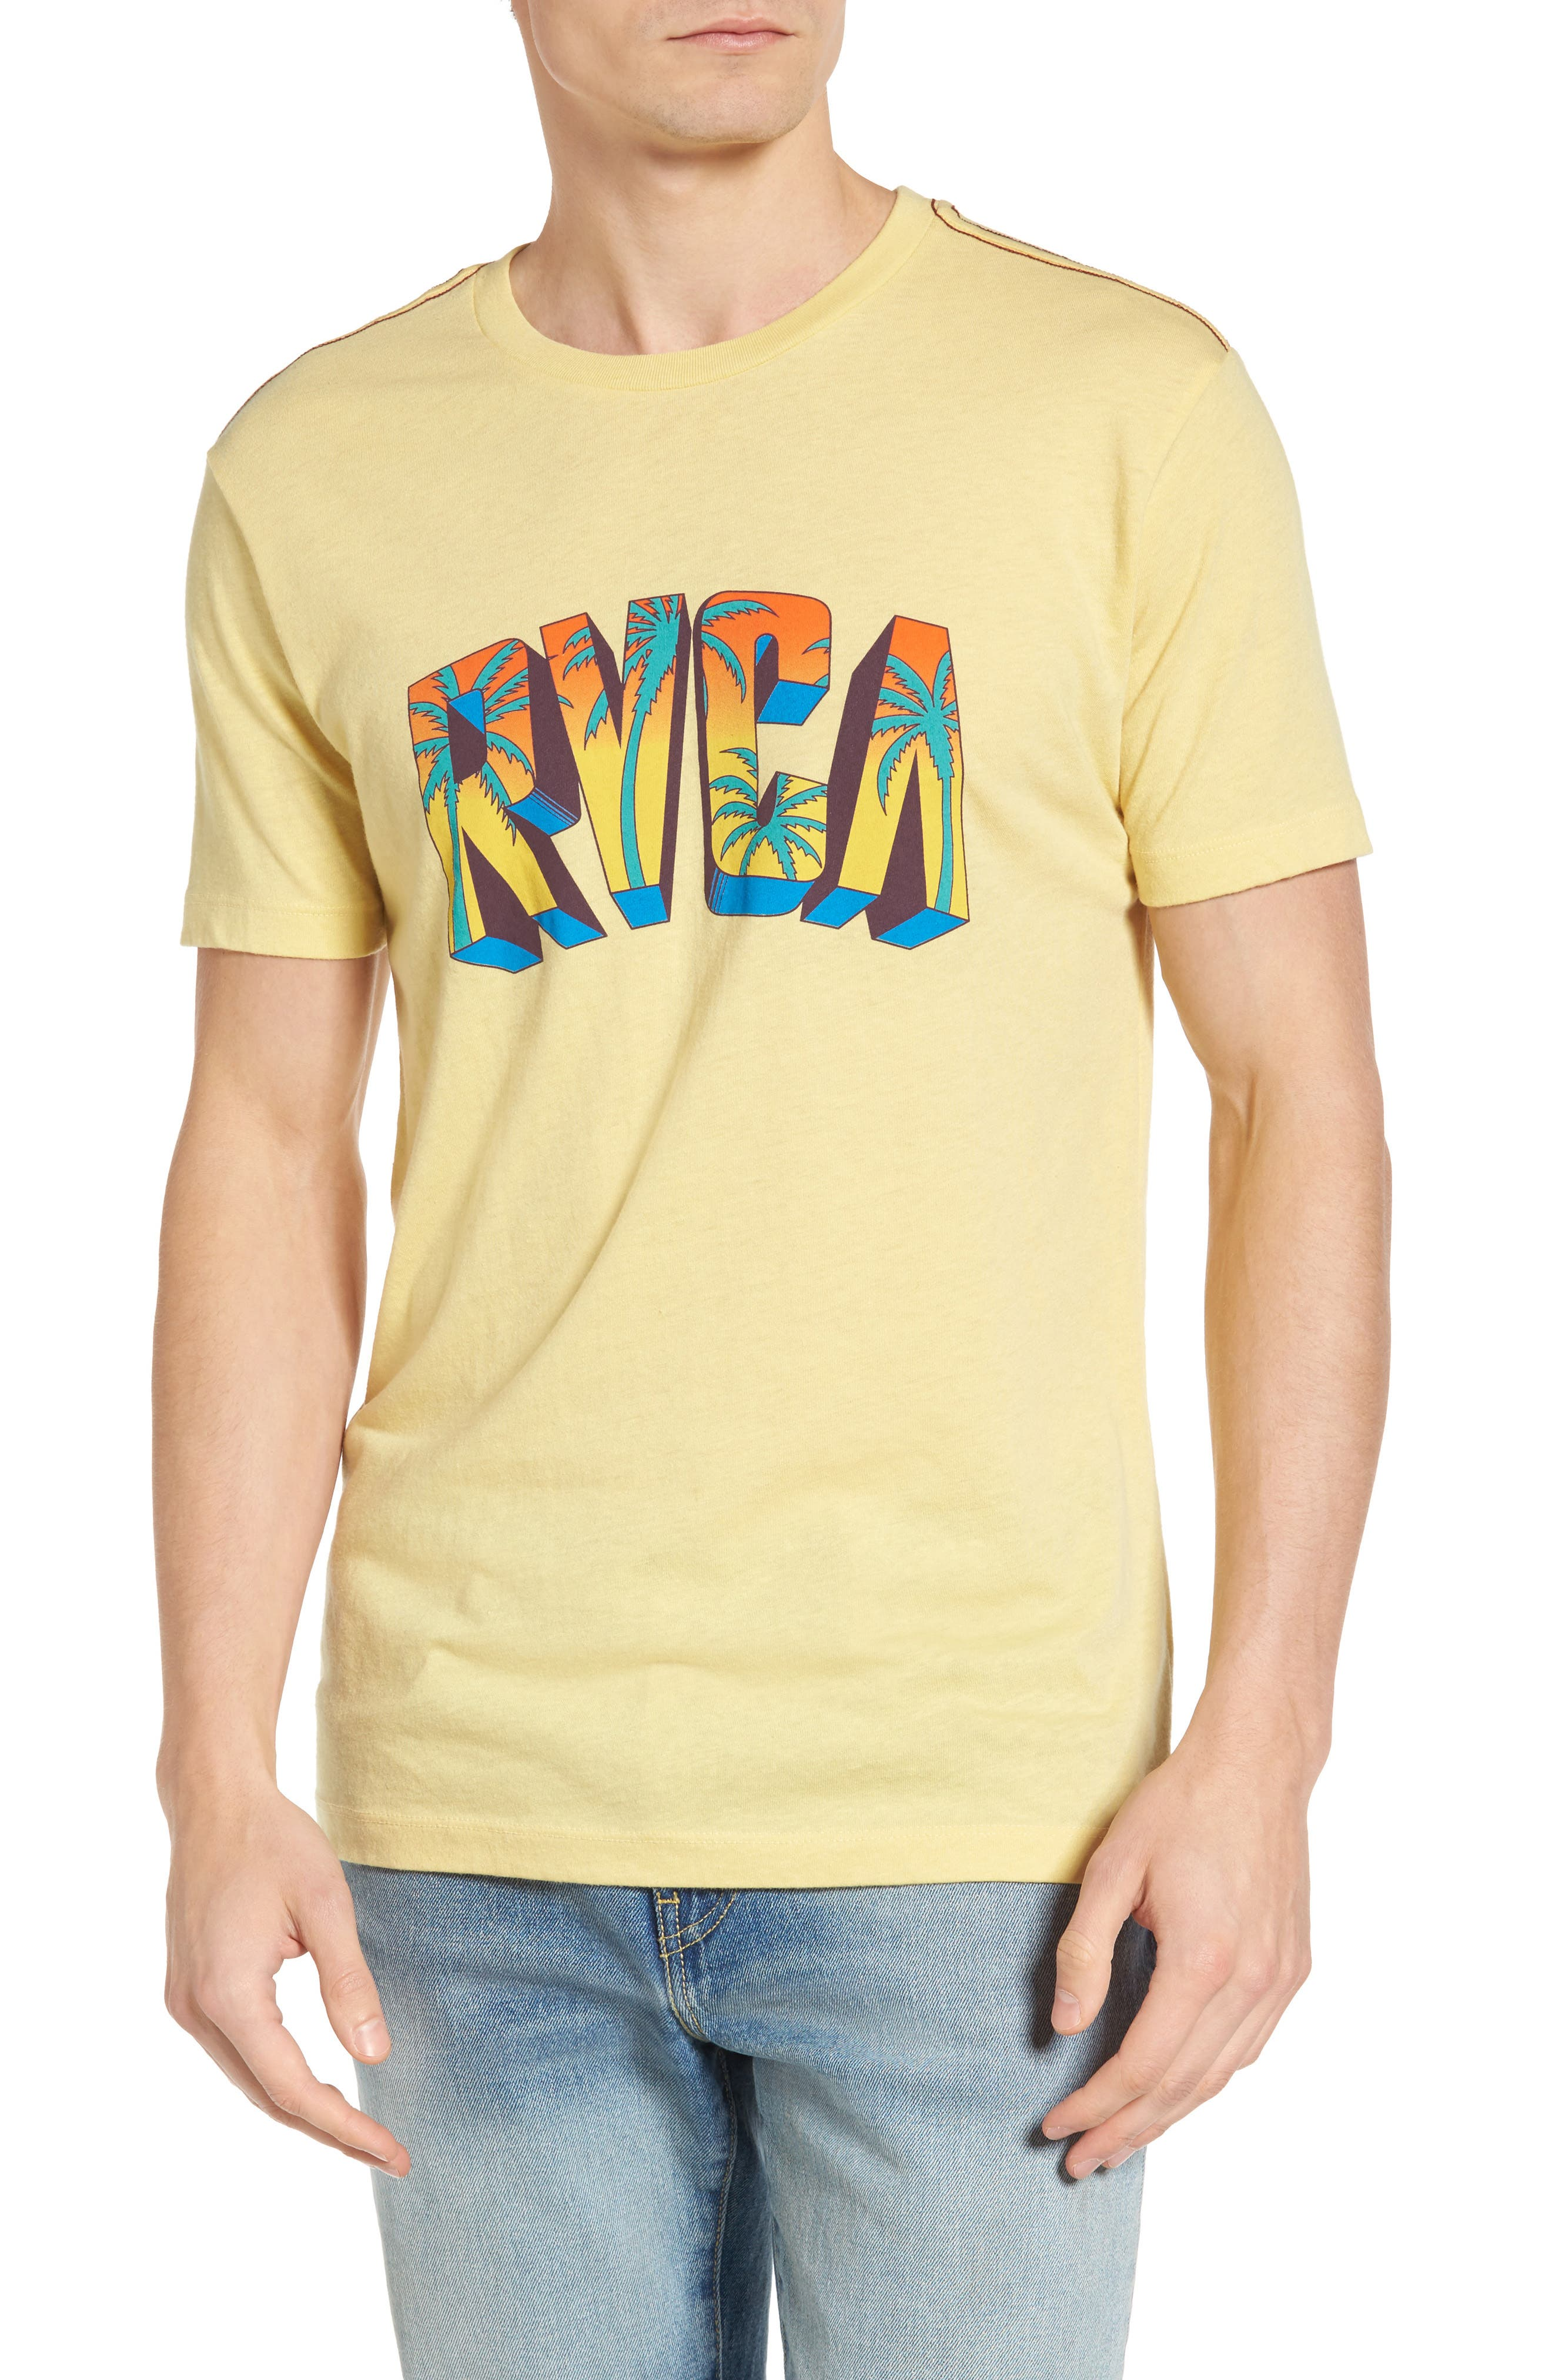 Alternate Image 1 Selected - RVCA Block Graphic T-Shirt